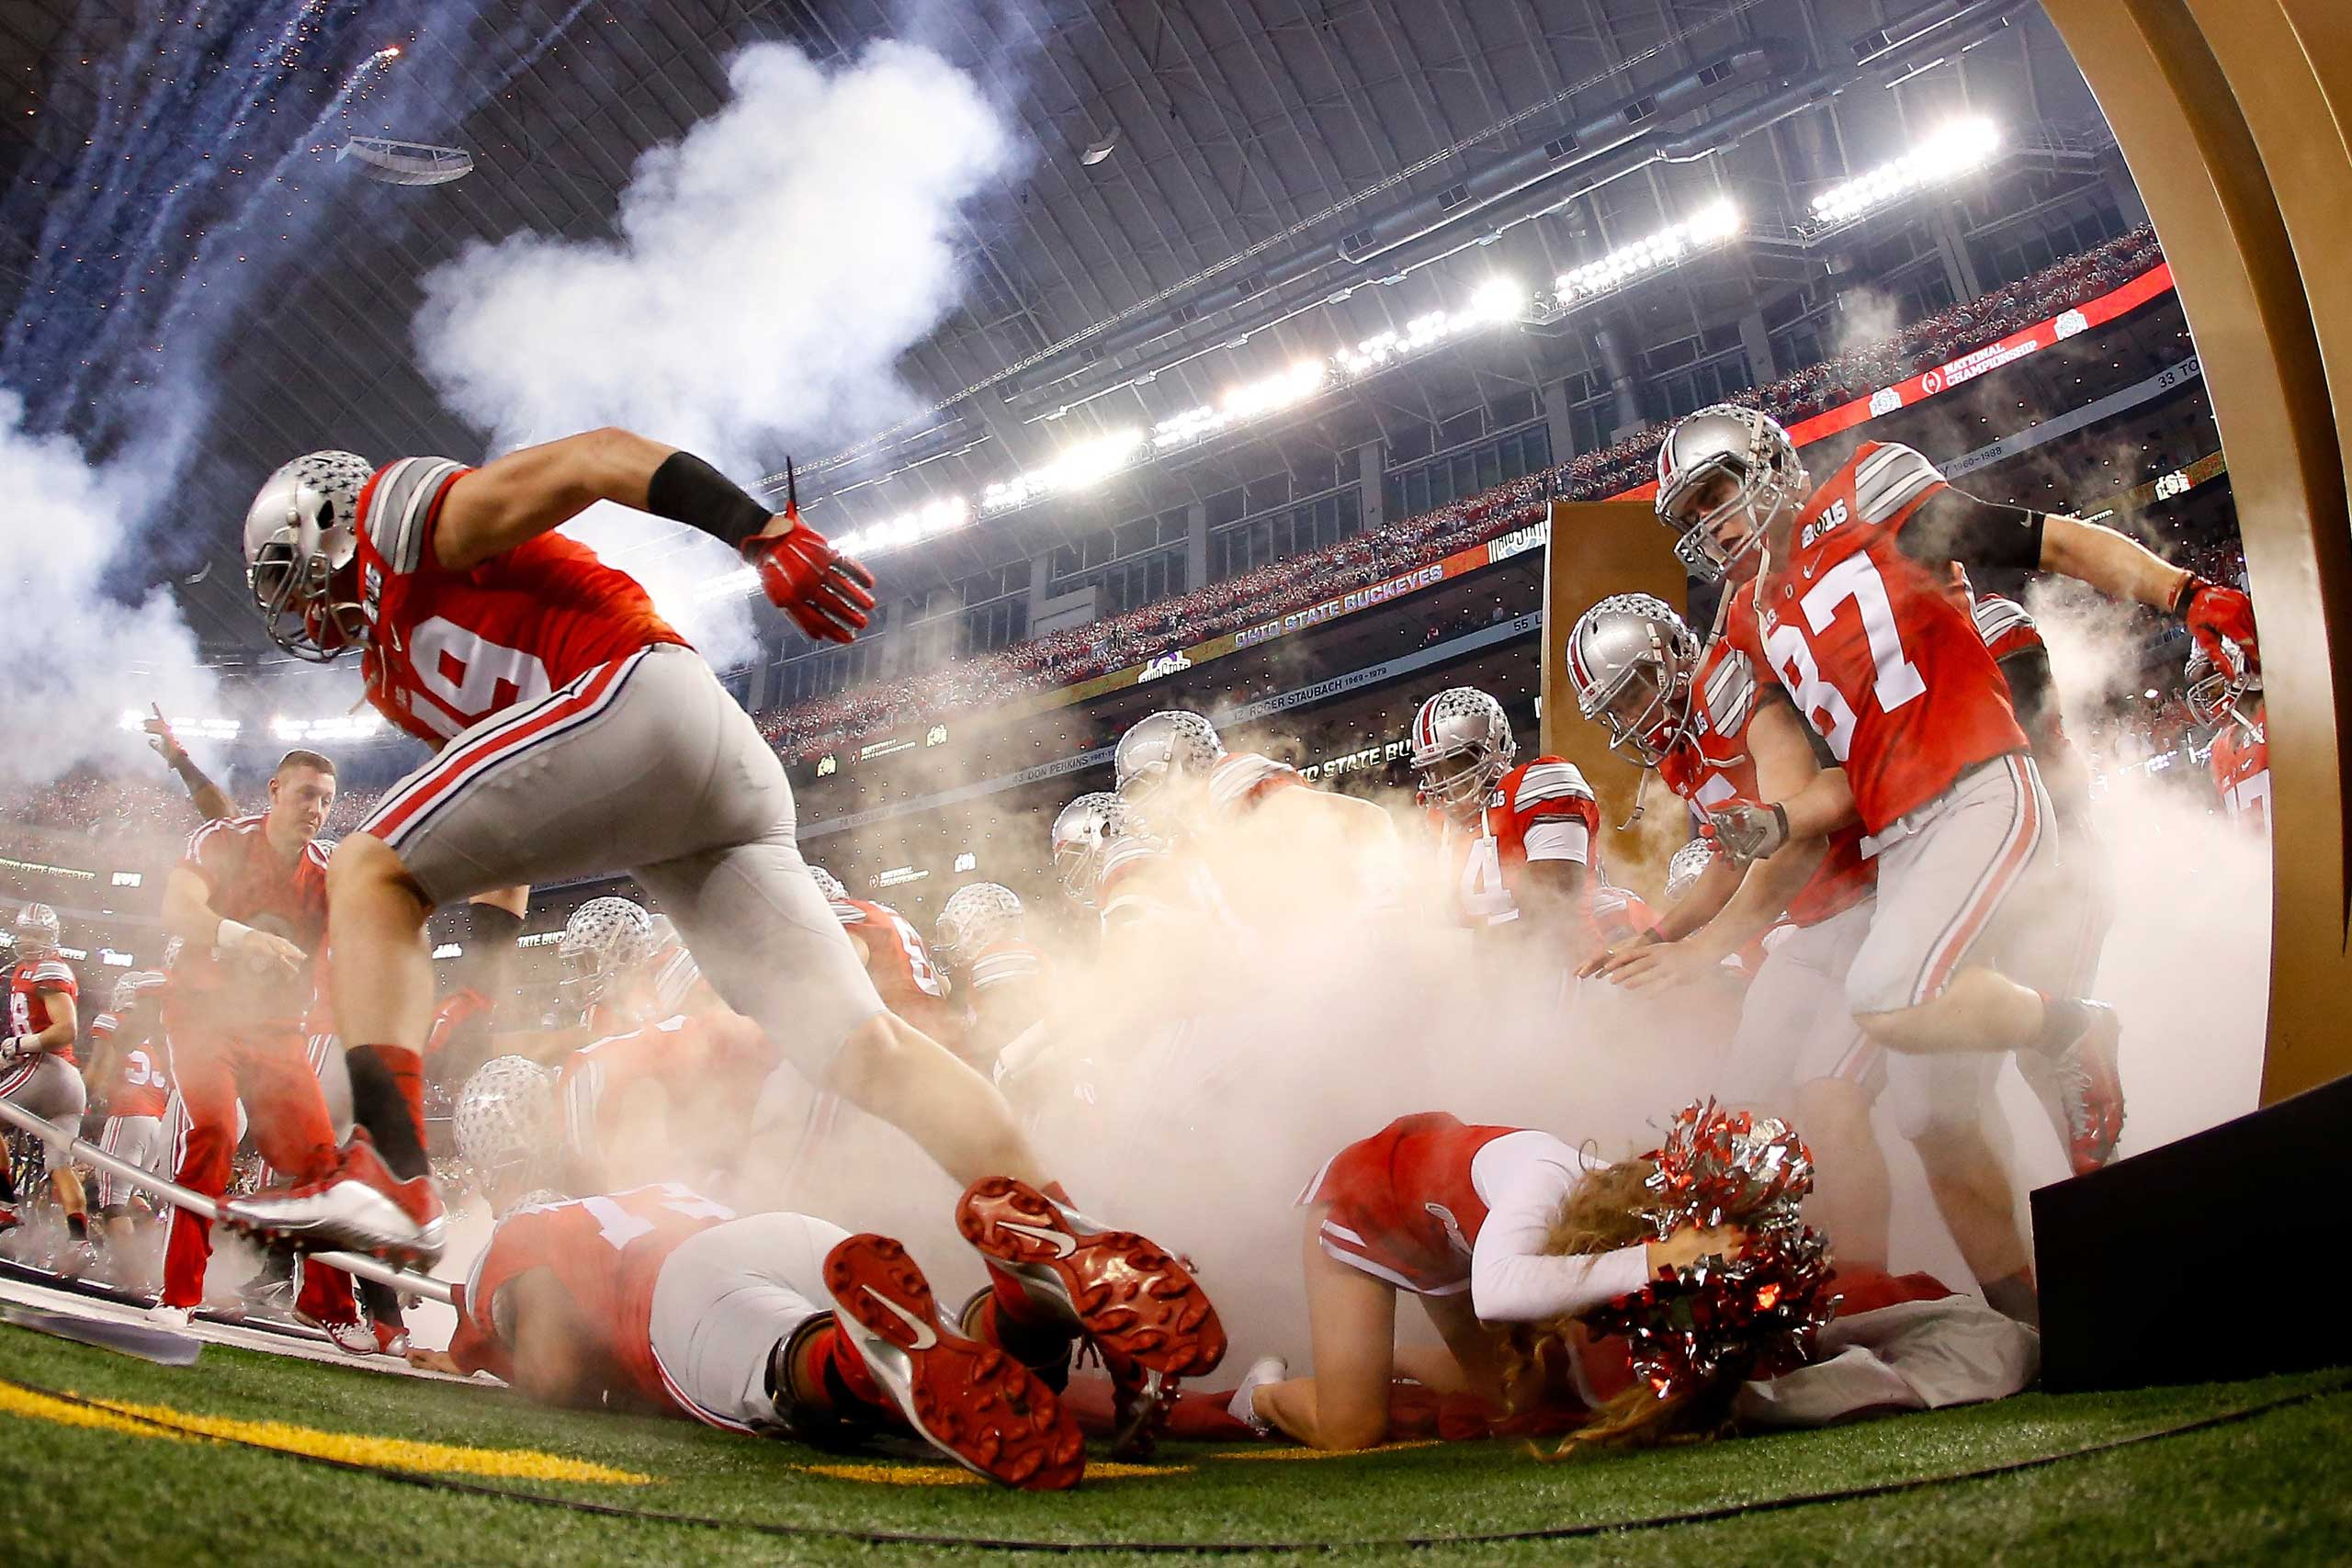 An Ohio State Buckeyes cheerleader falls as the Buckeyes run out to the field before the College Football Playoff National Championship Game on Jan. 12, 2015 in Arlington, Texas.